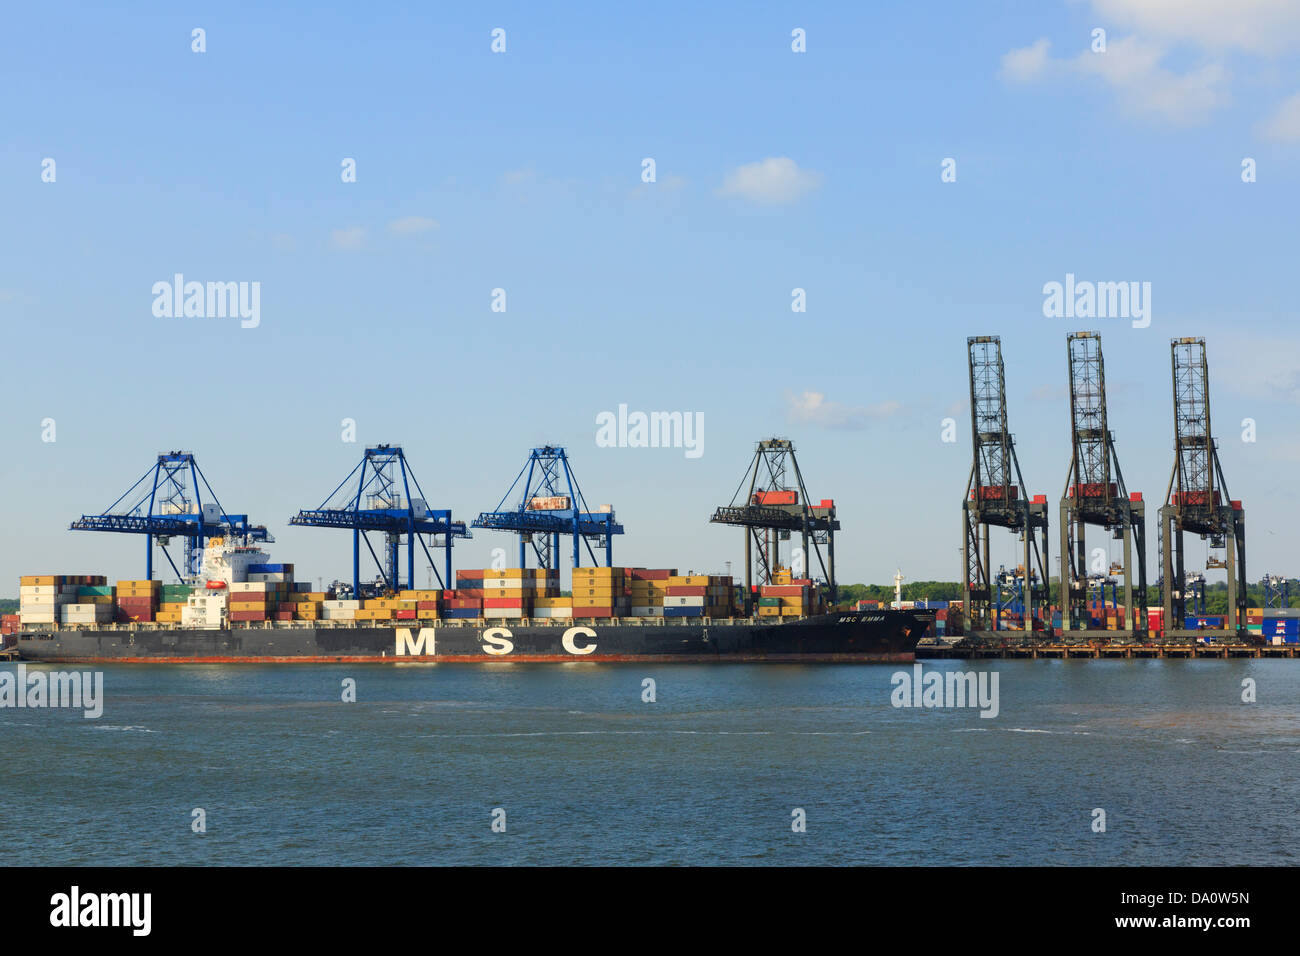 Gantry cranes lifting containers on to Mediterranean Shipping Company container ship docked in Trinity terminal. Felixstowe Port Stock Photo